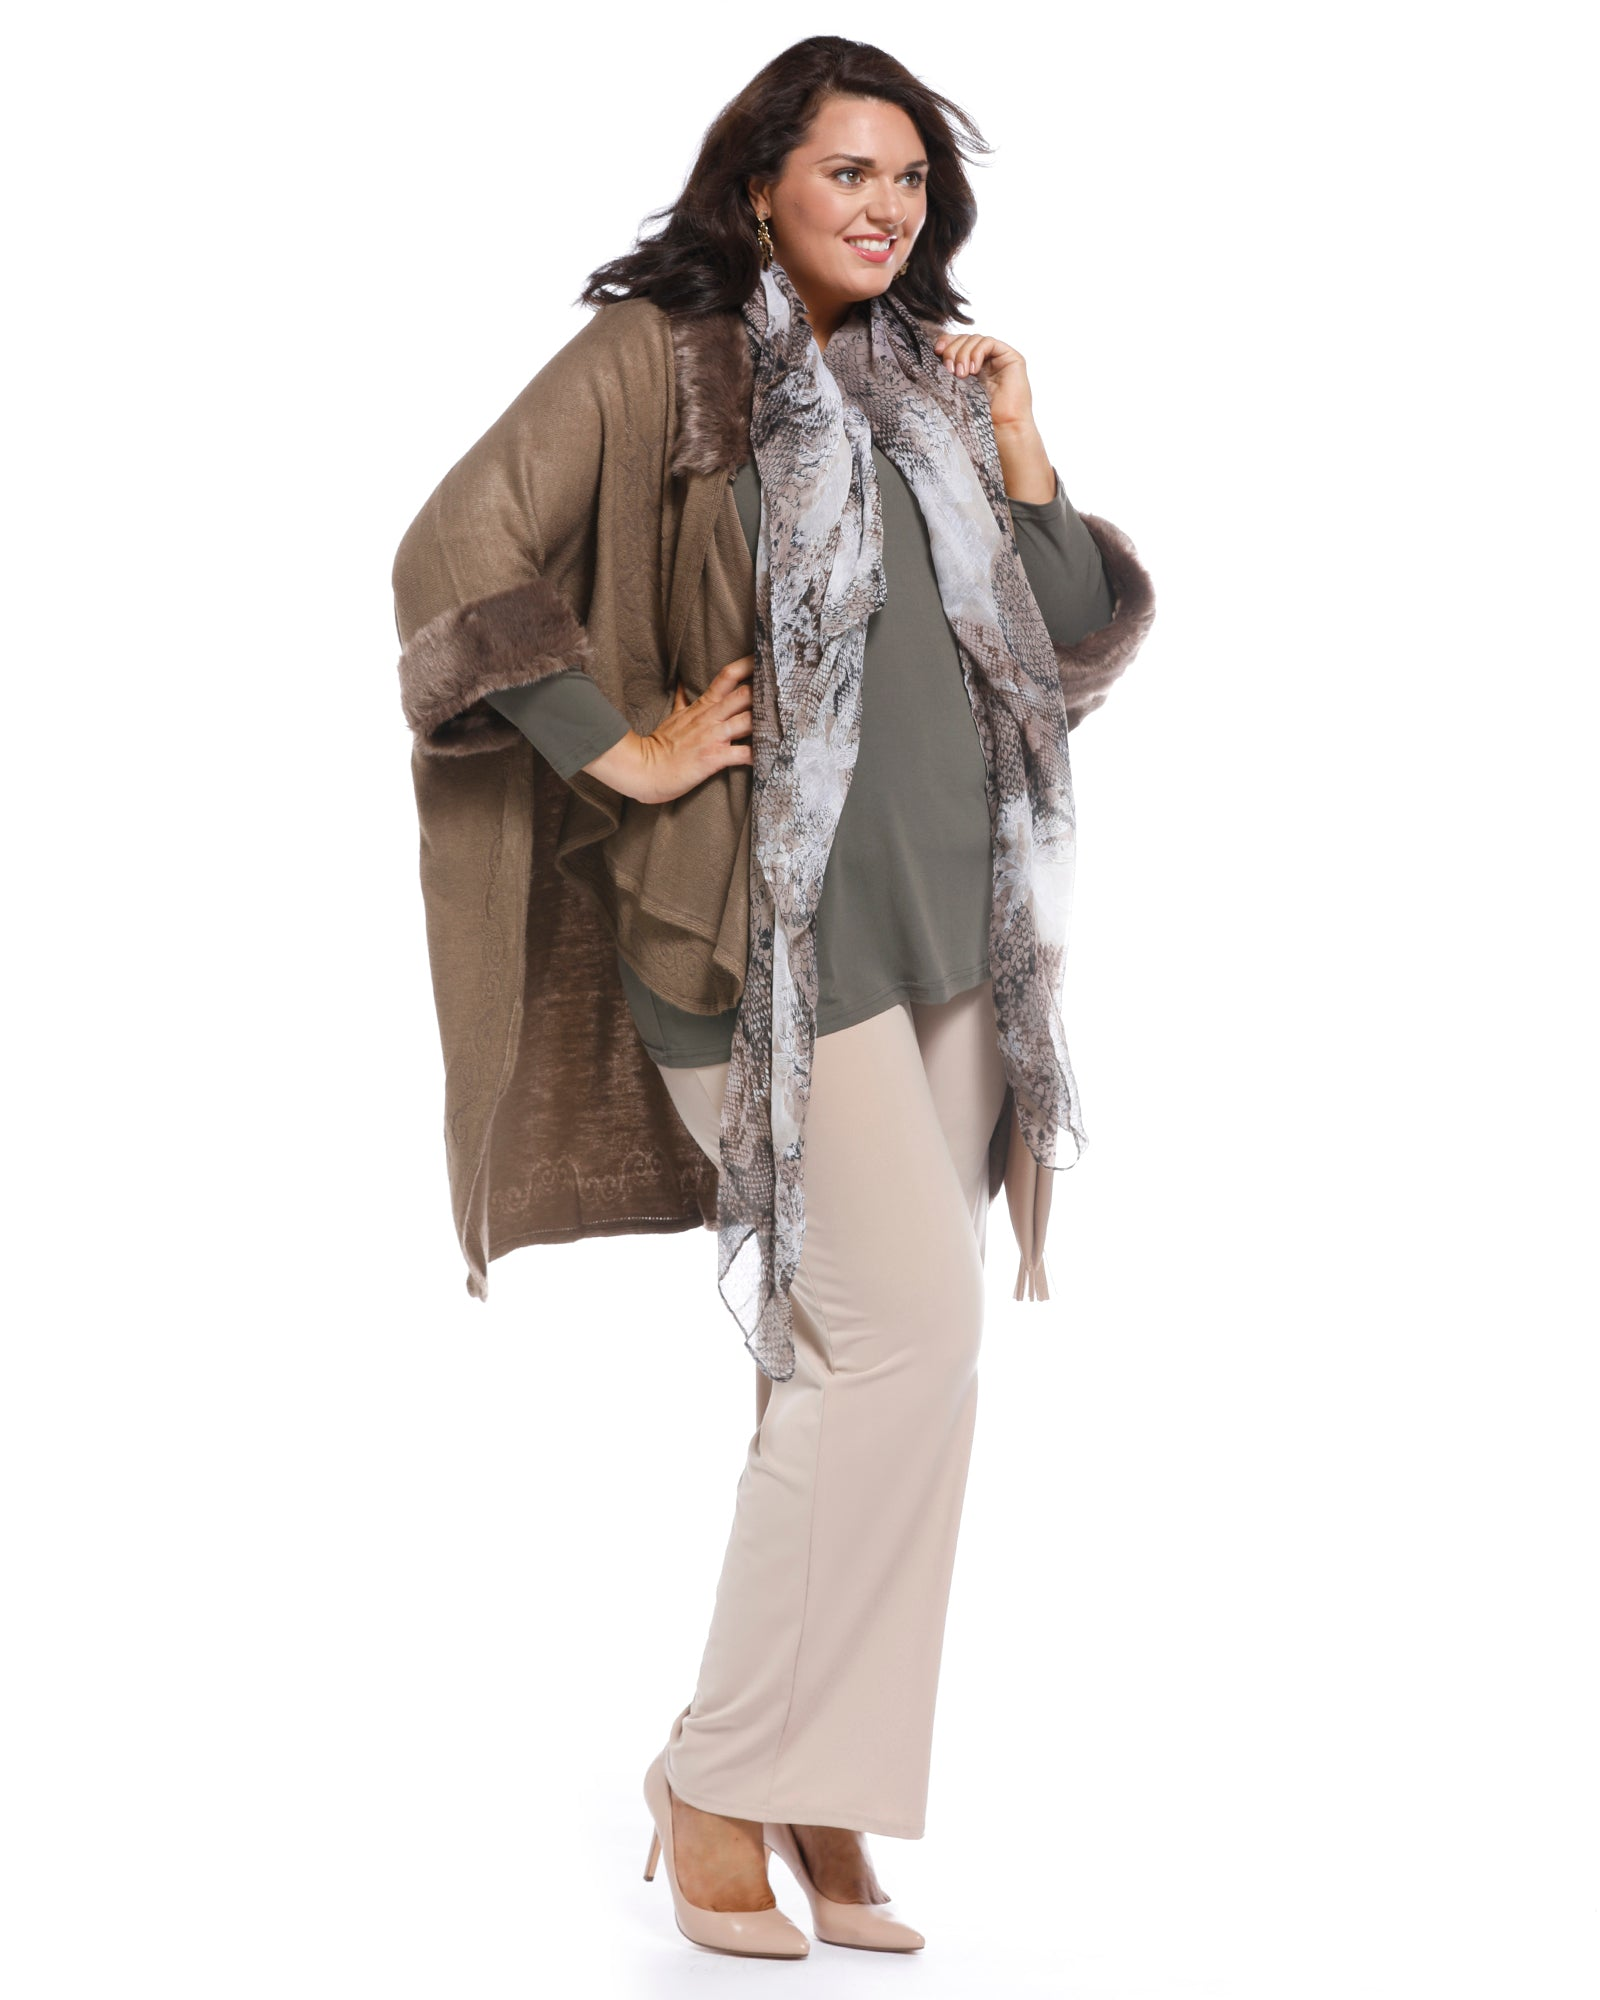 Plus size clothing, plus size cover up, plus size poncho